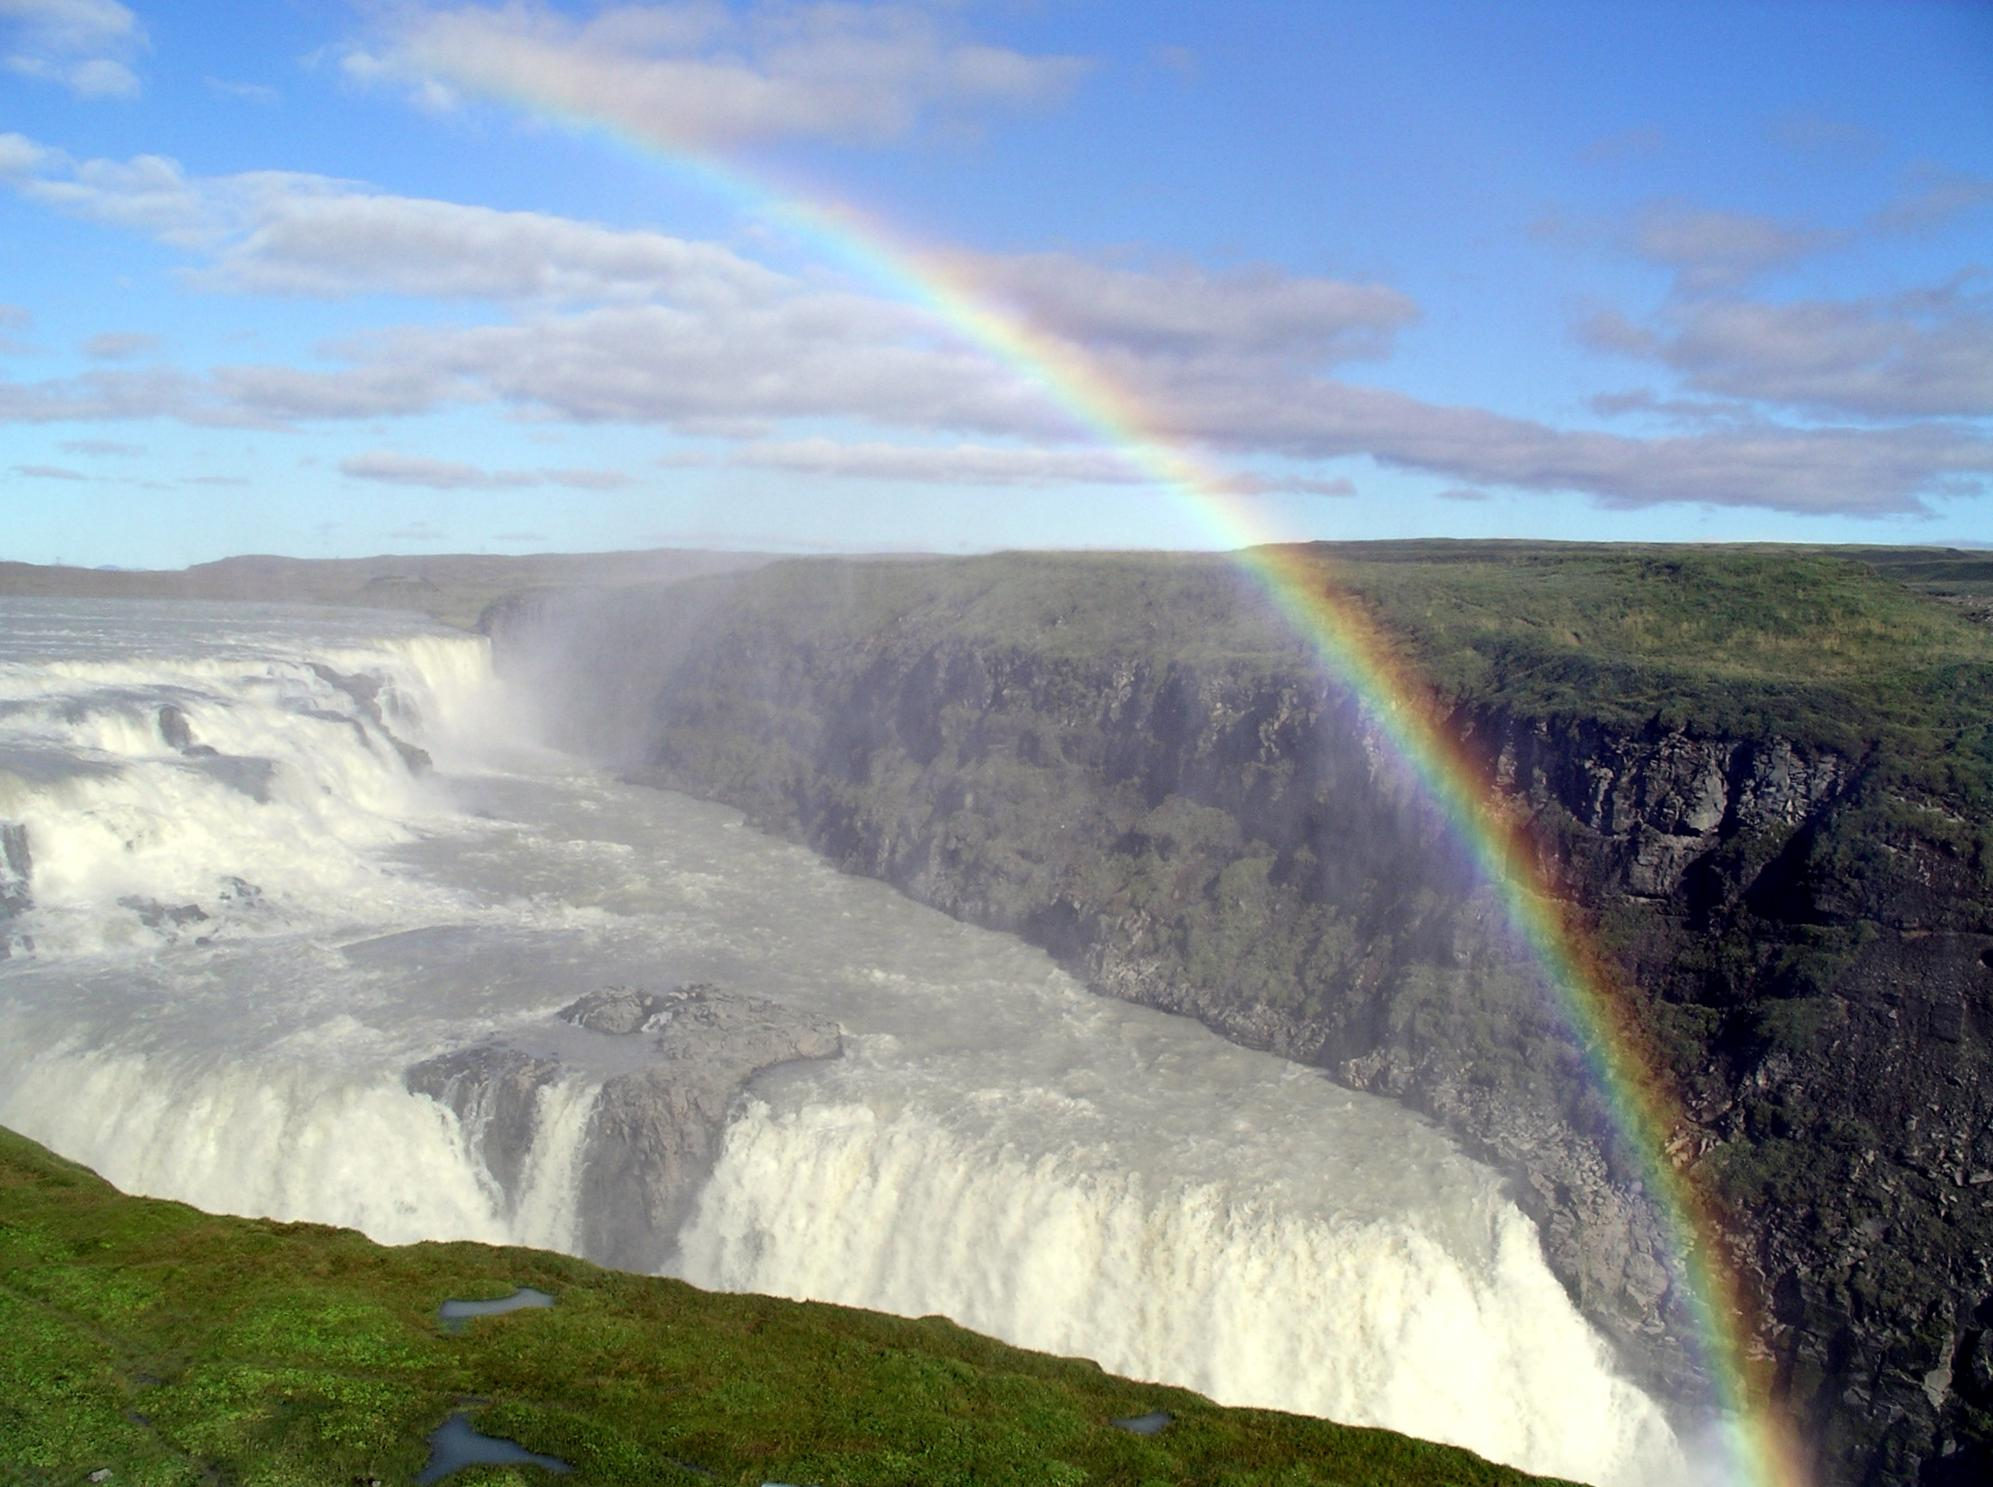 Download this File Gullfoss Rainbow picture